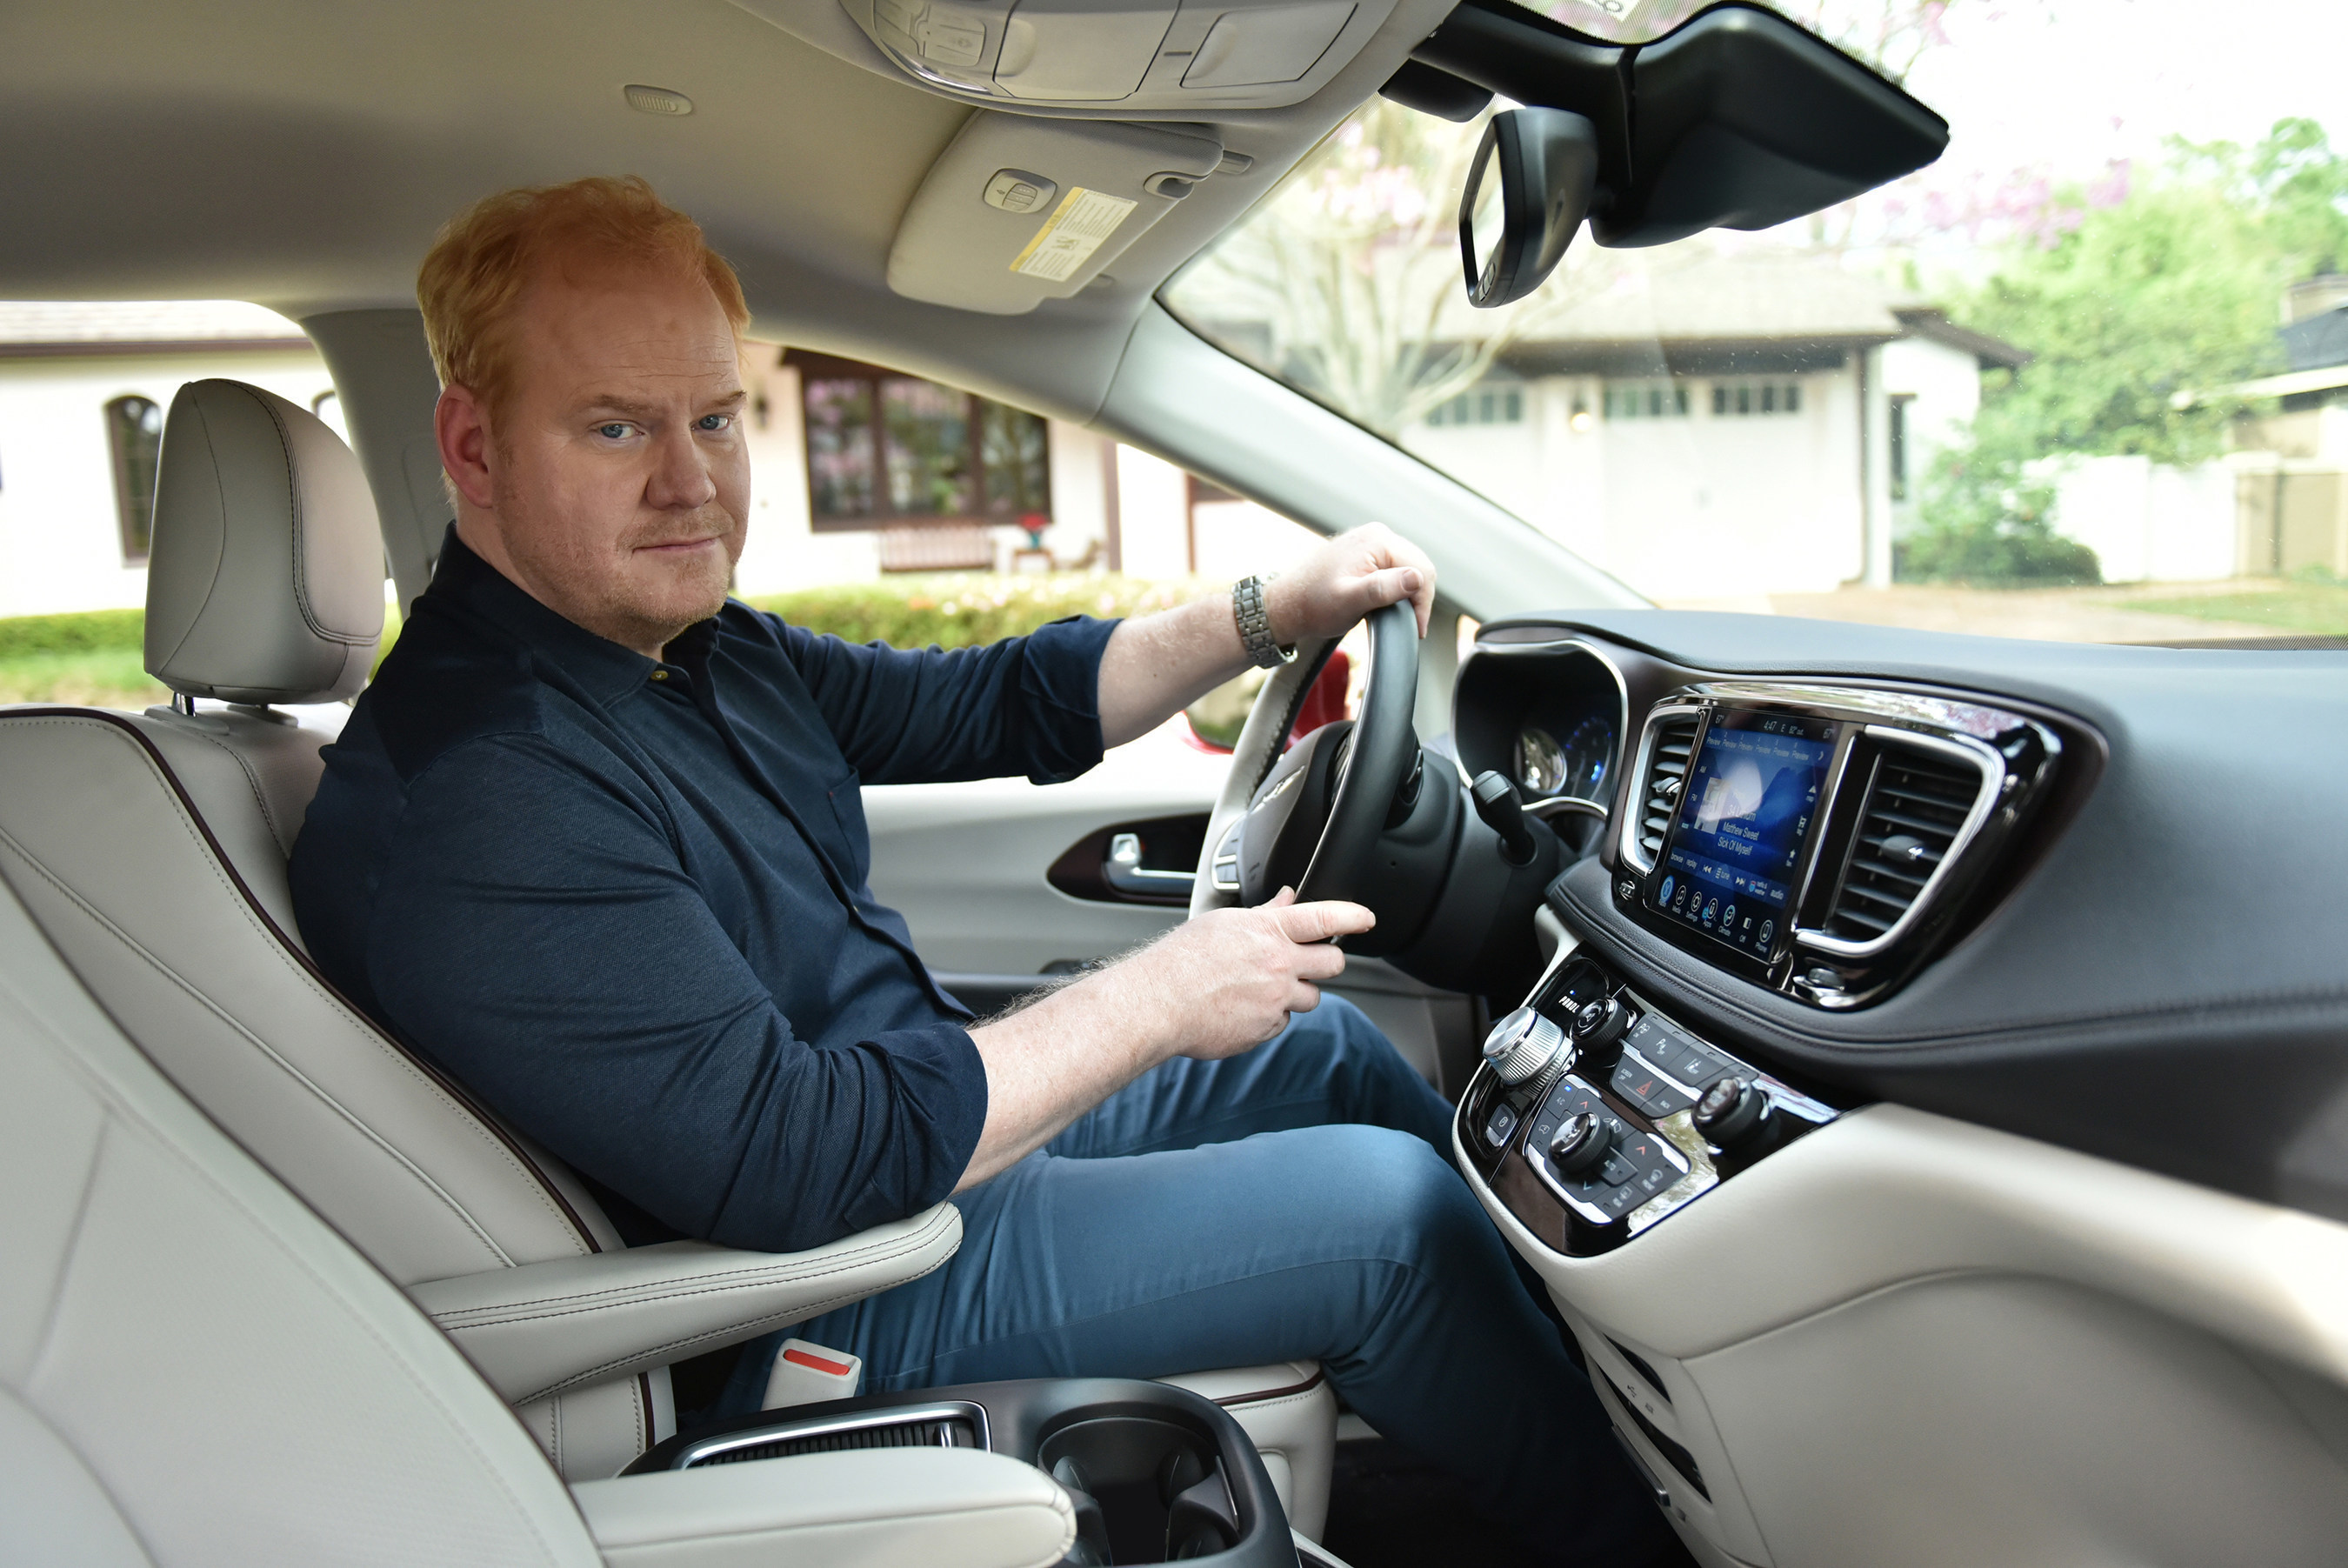 Jim Gaffigan Stars in Chrysler Brand's 'Dad Brand' Marketing Campaign for the All-New 2017 Chrysler Pacifica